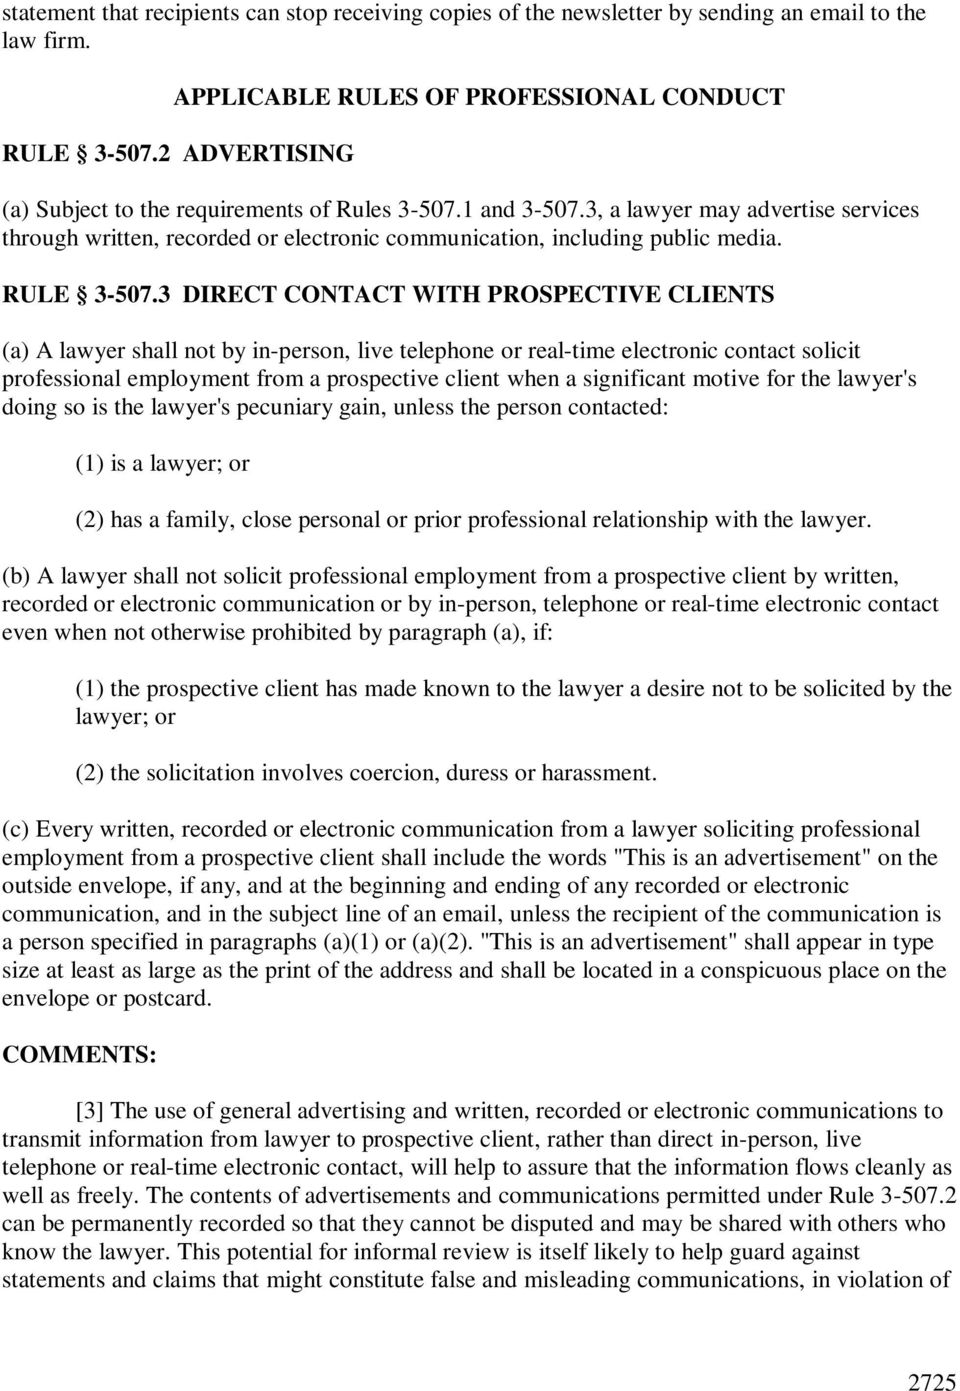 3 DIRECT CONTACT WITH PROSPECTIVE CLIENTS (a) A lawyer shall not by in-person, live telephone or real-time electronic contact solicit professional employment from a prospective client when a